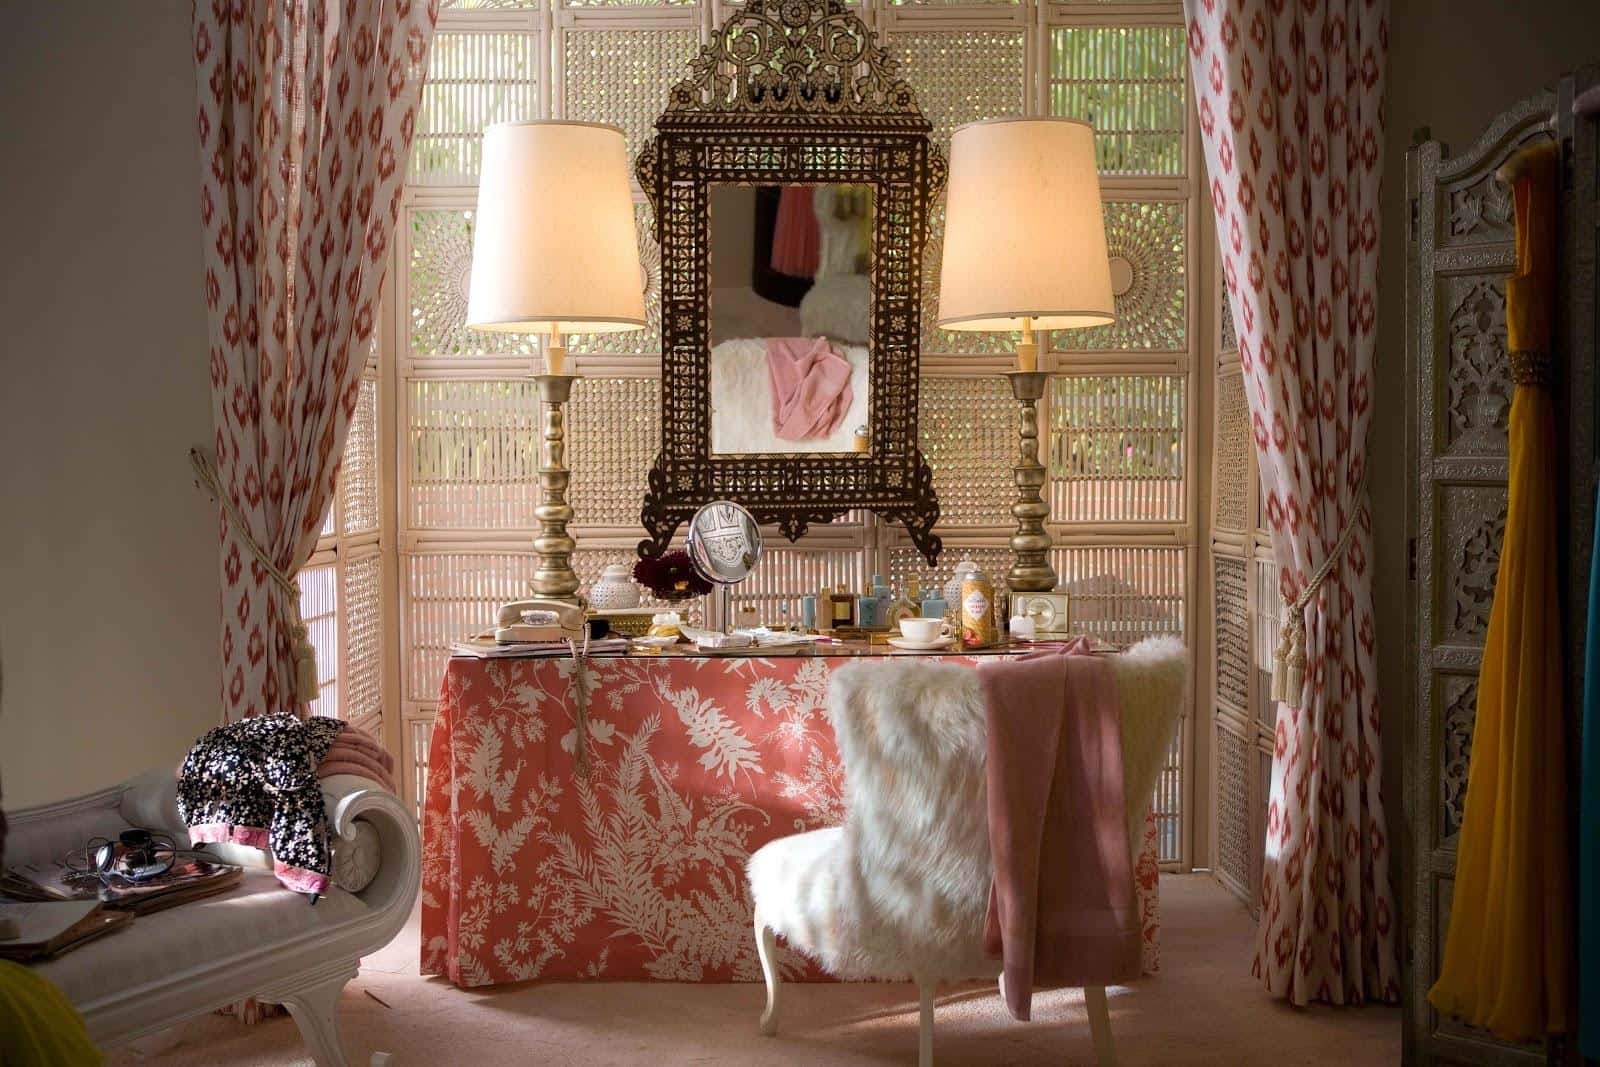 Boudoir Interior Design Ideas for the Refined Woman's Taste. Red and pink color scheme with a lot of drapery